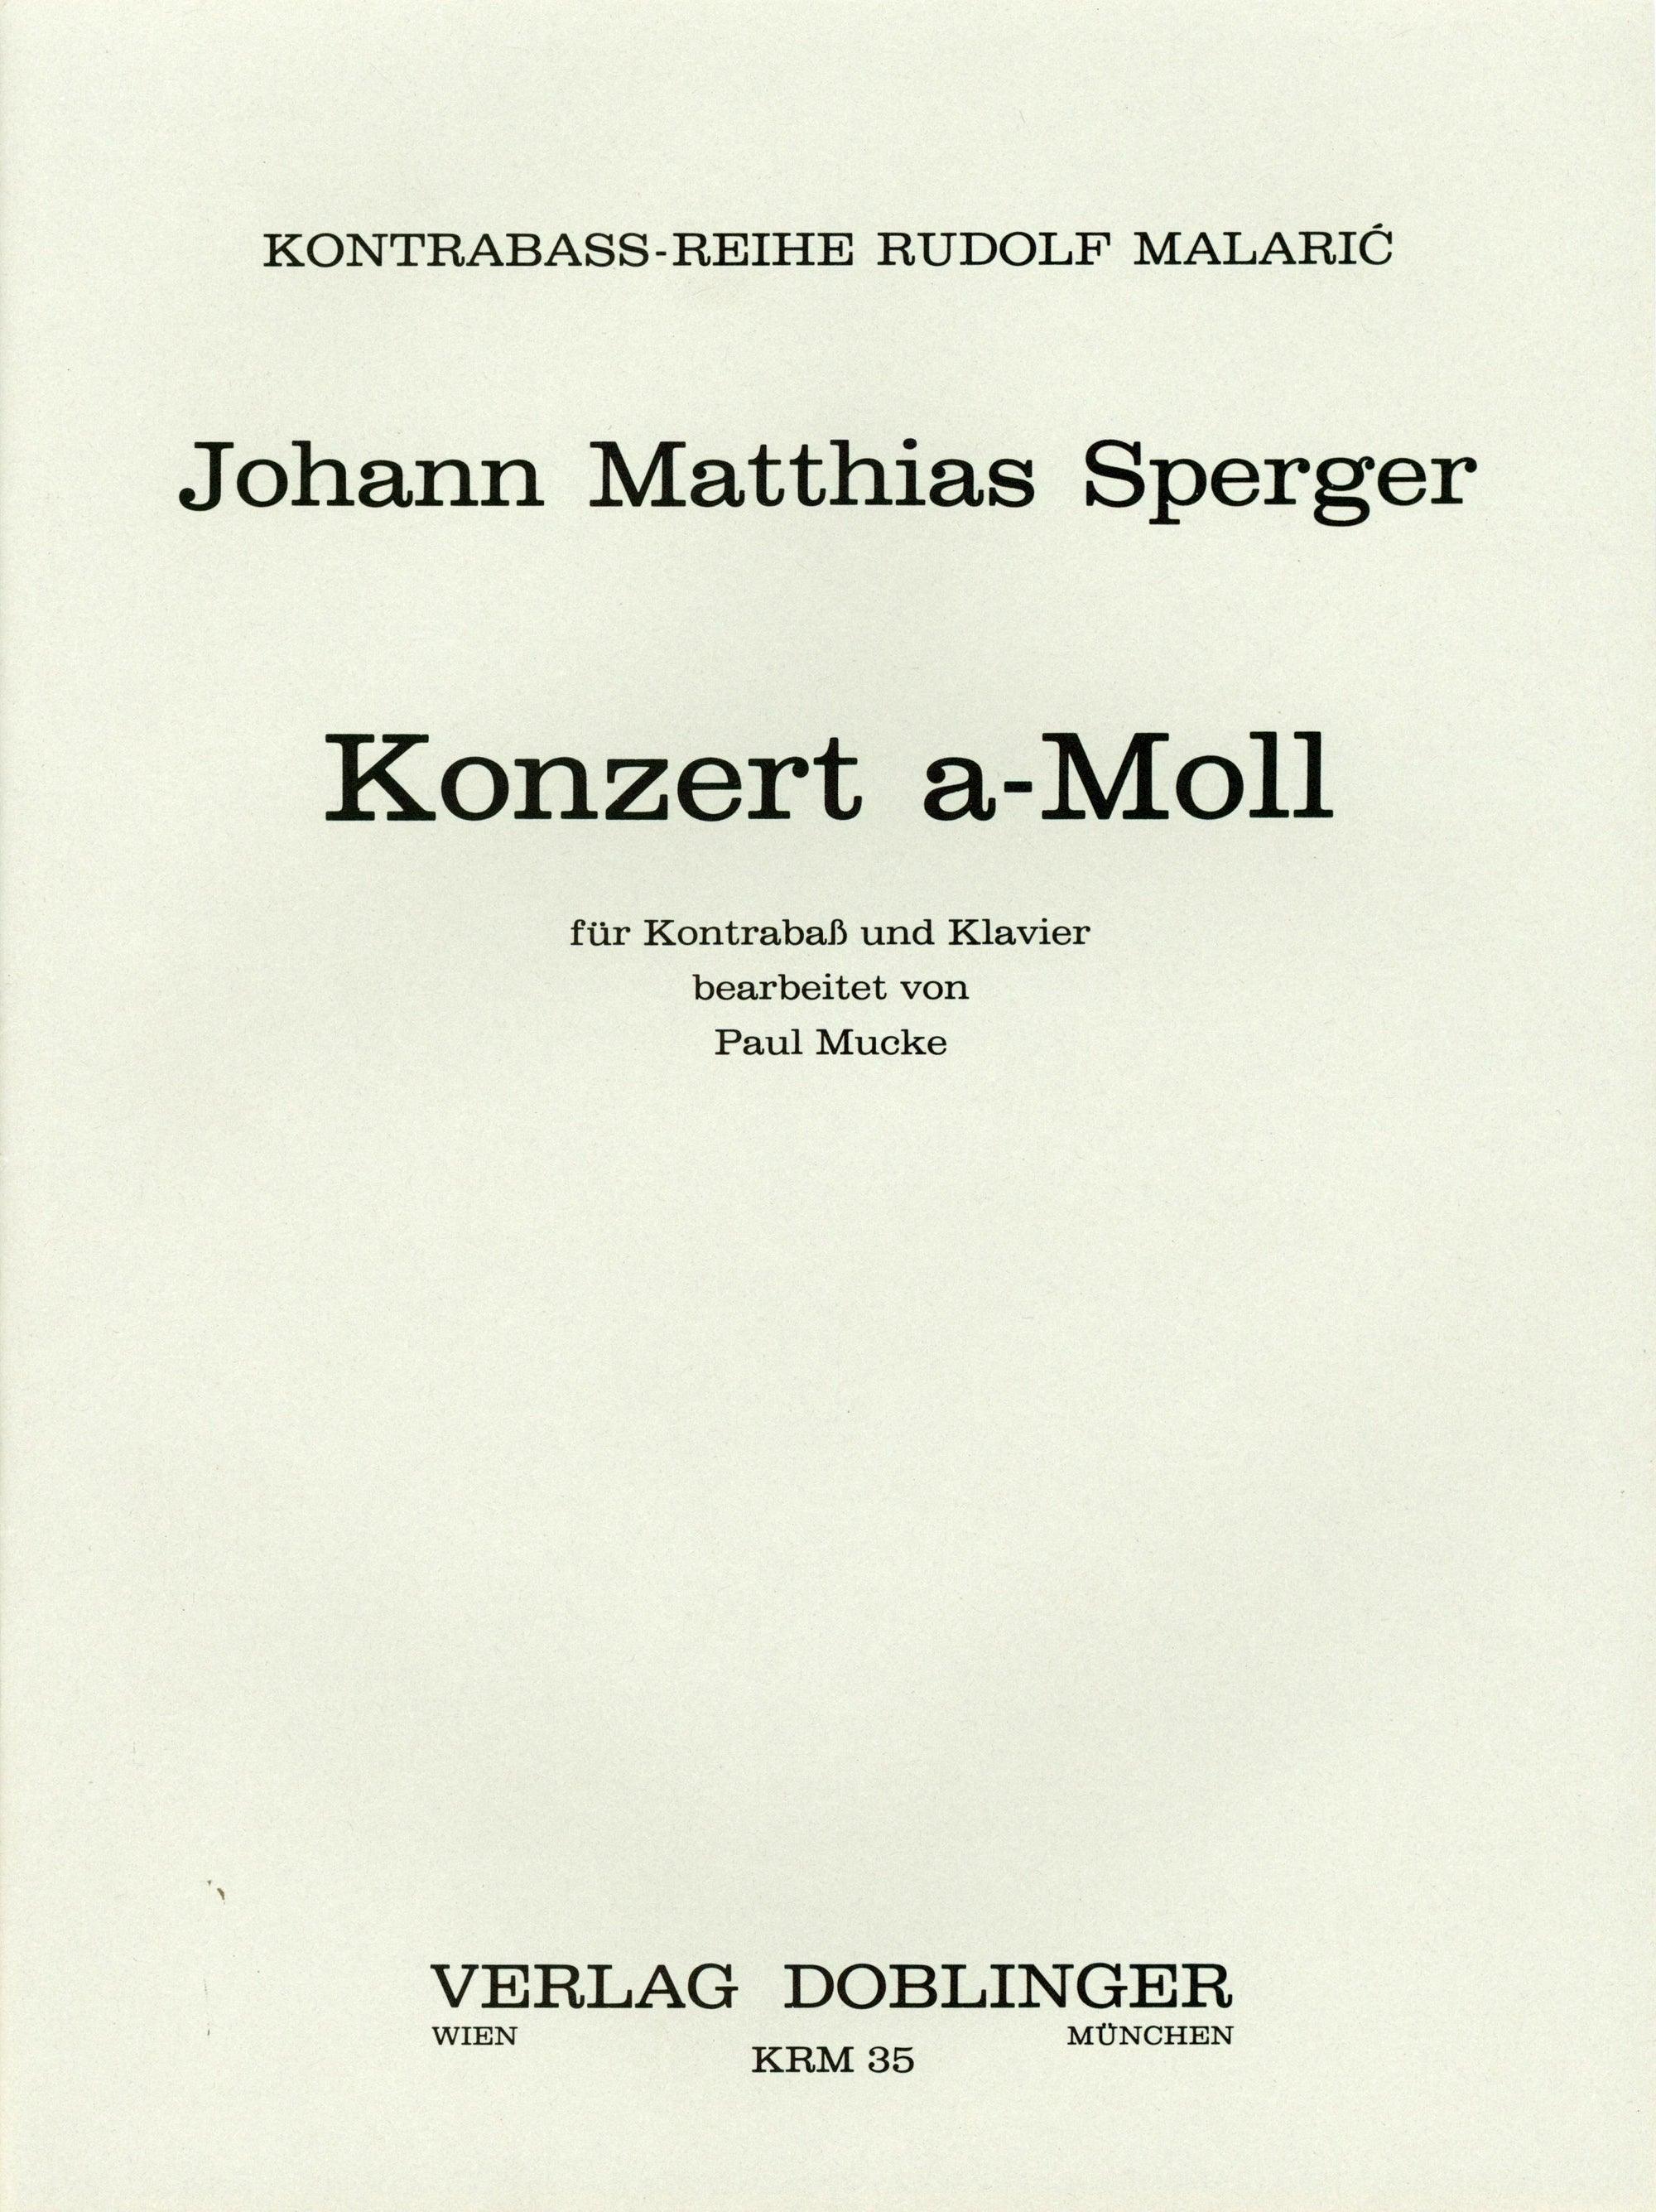 Sperger: Double Bass Concerto No. 3 in A Minor